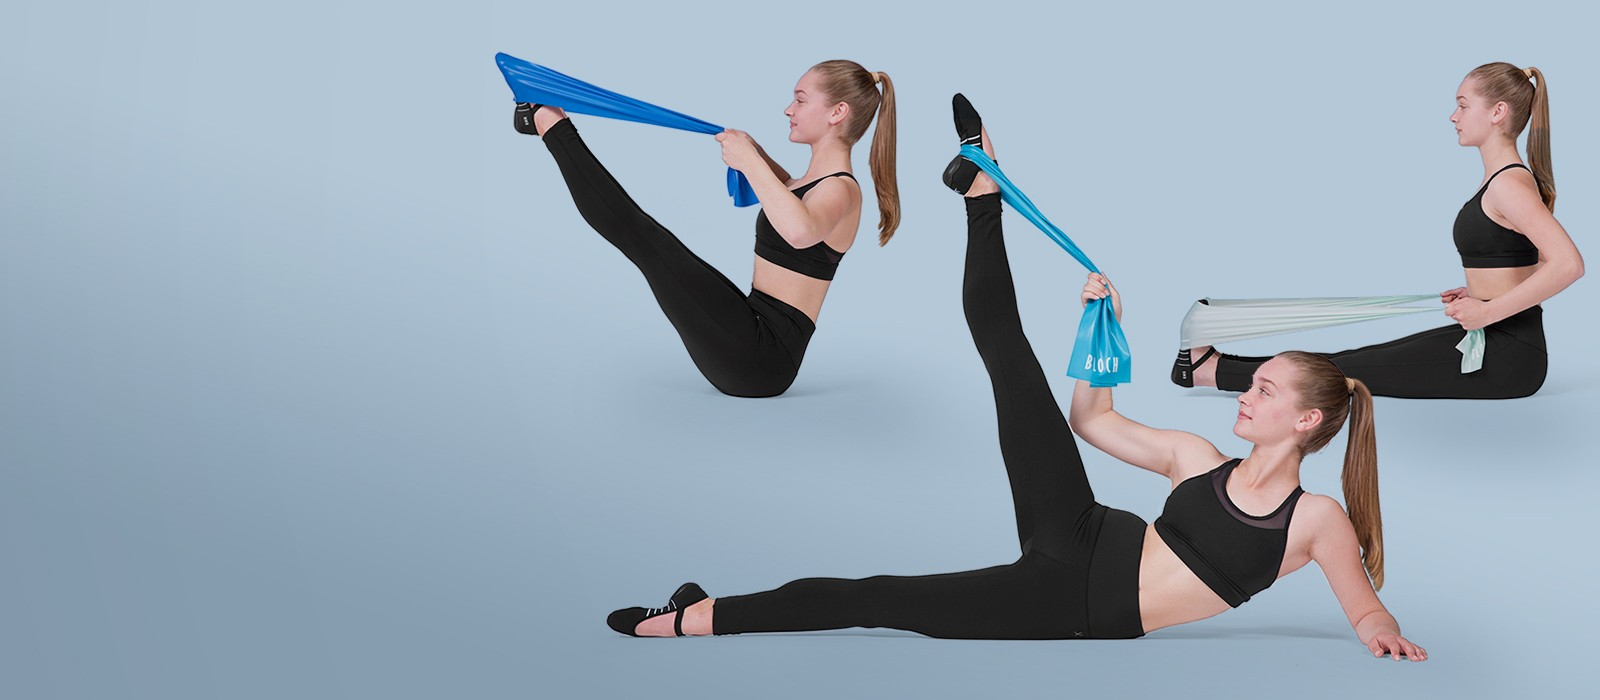 image - Resistance bands for a range of exercises.